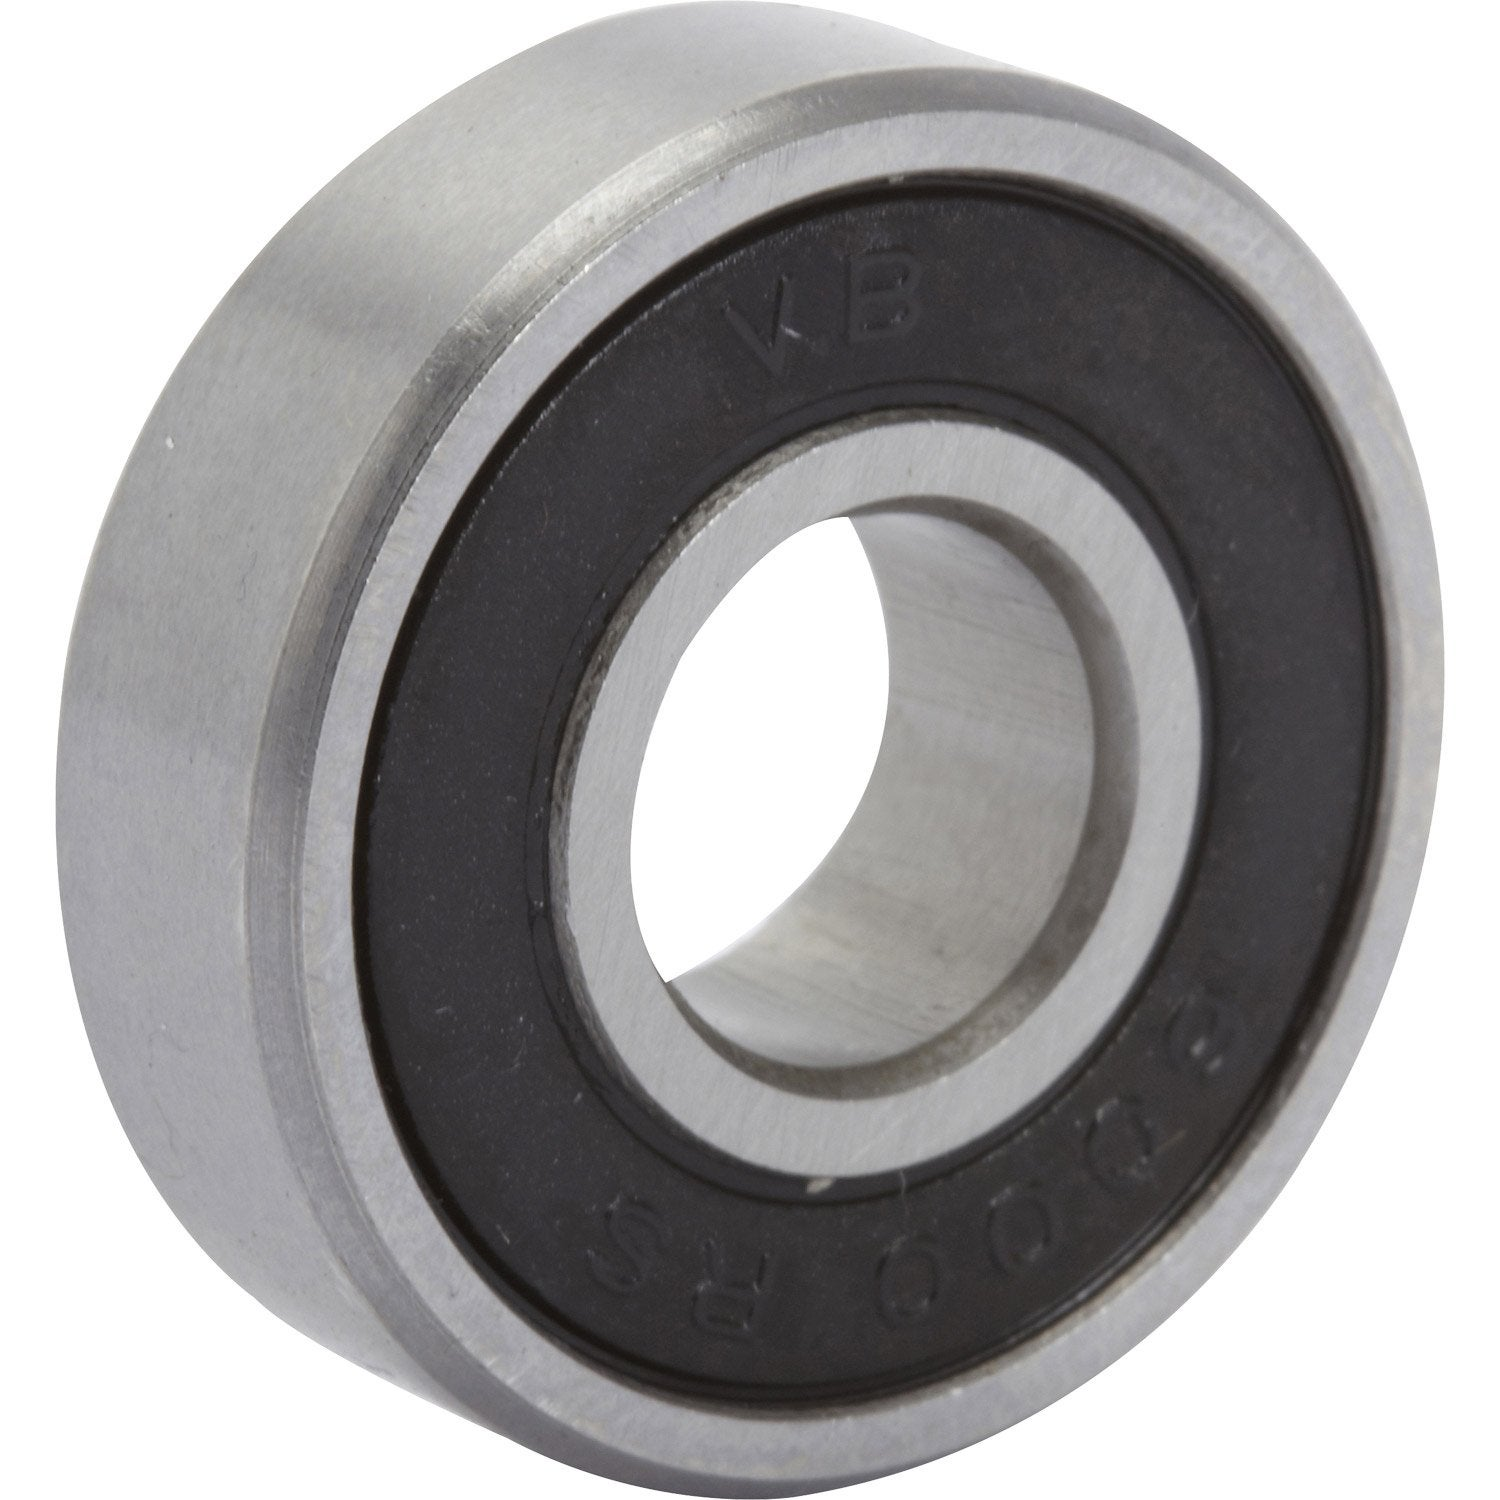 roulement 224 billes sur axe pour d 233 placements fr 233 quents diam 232 tre 22 mm leroy merlin